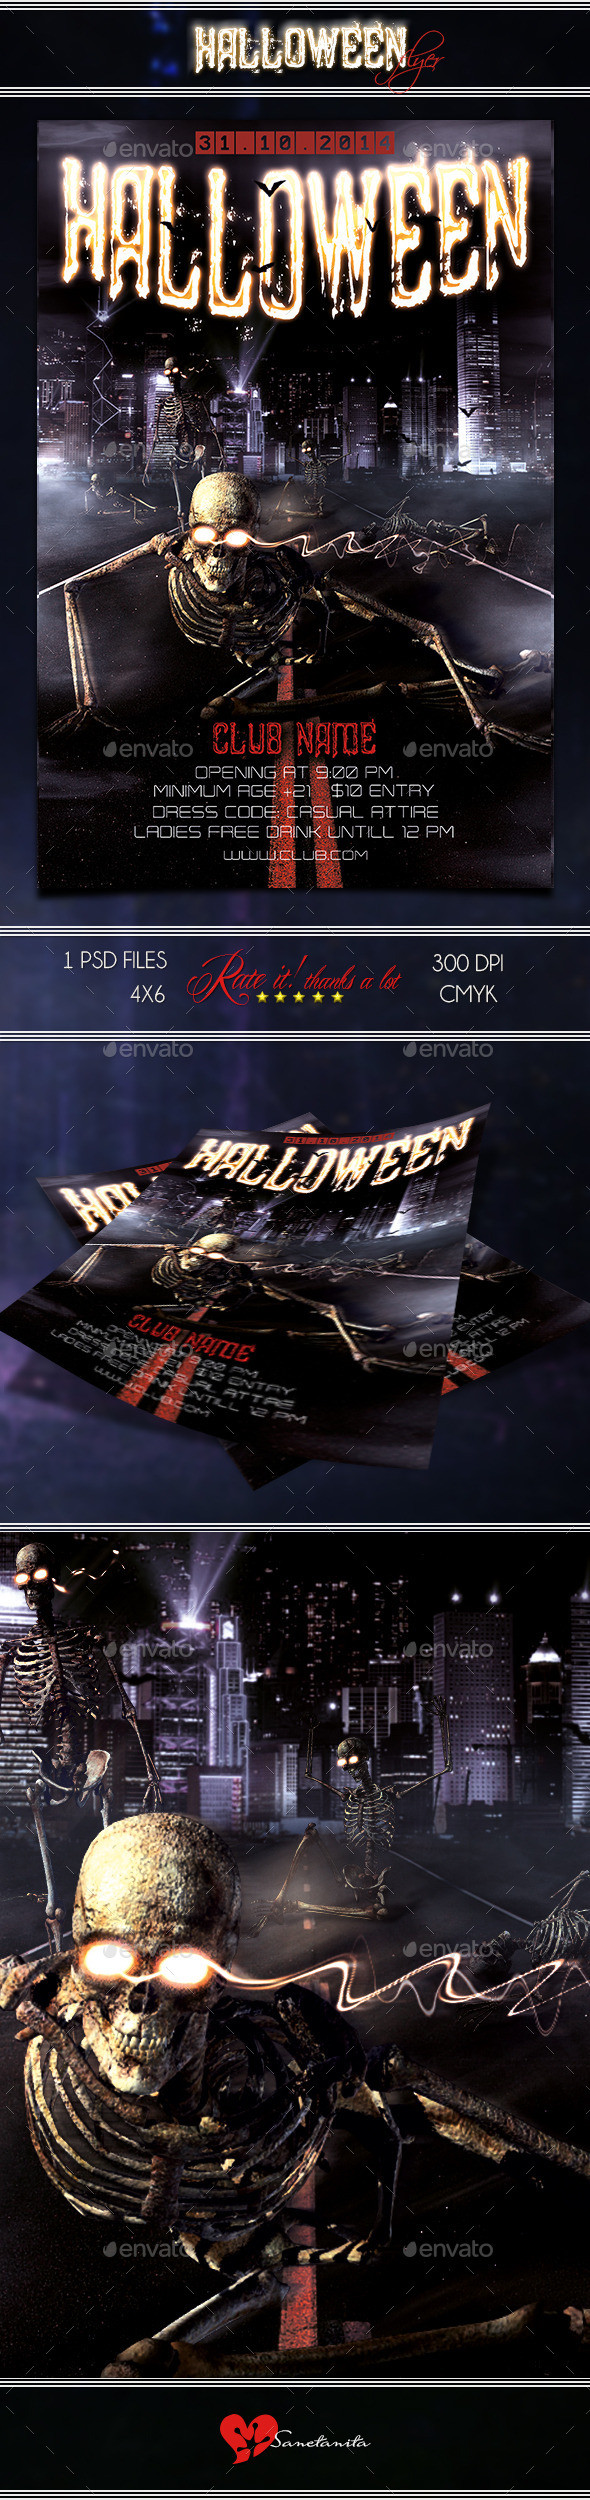 Halloween 20flyer 20preview